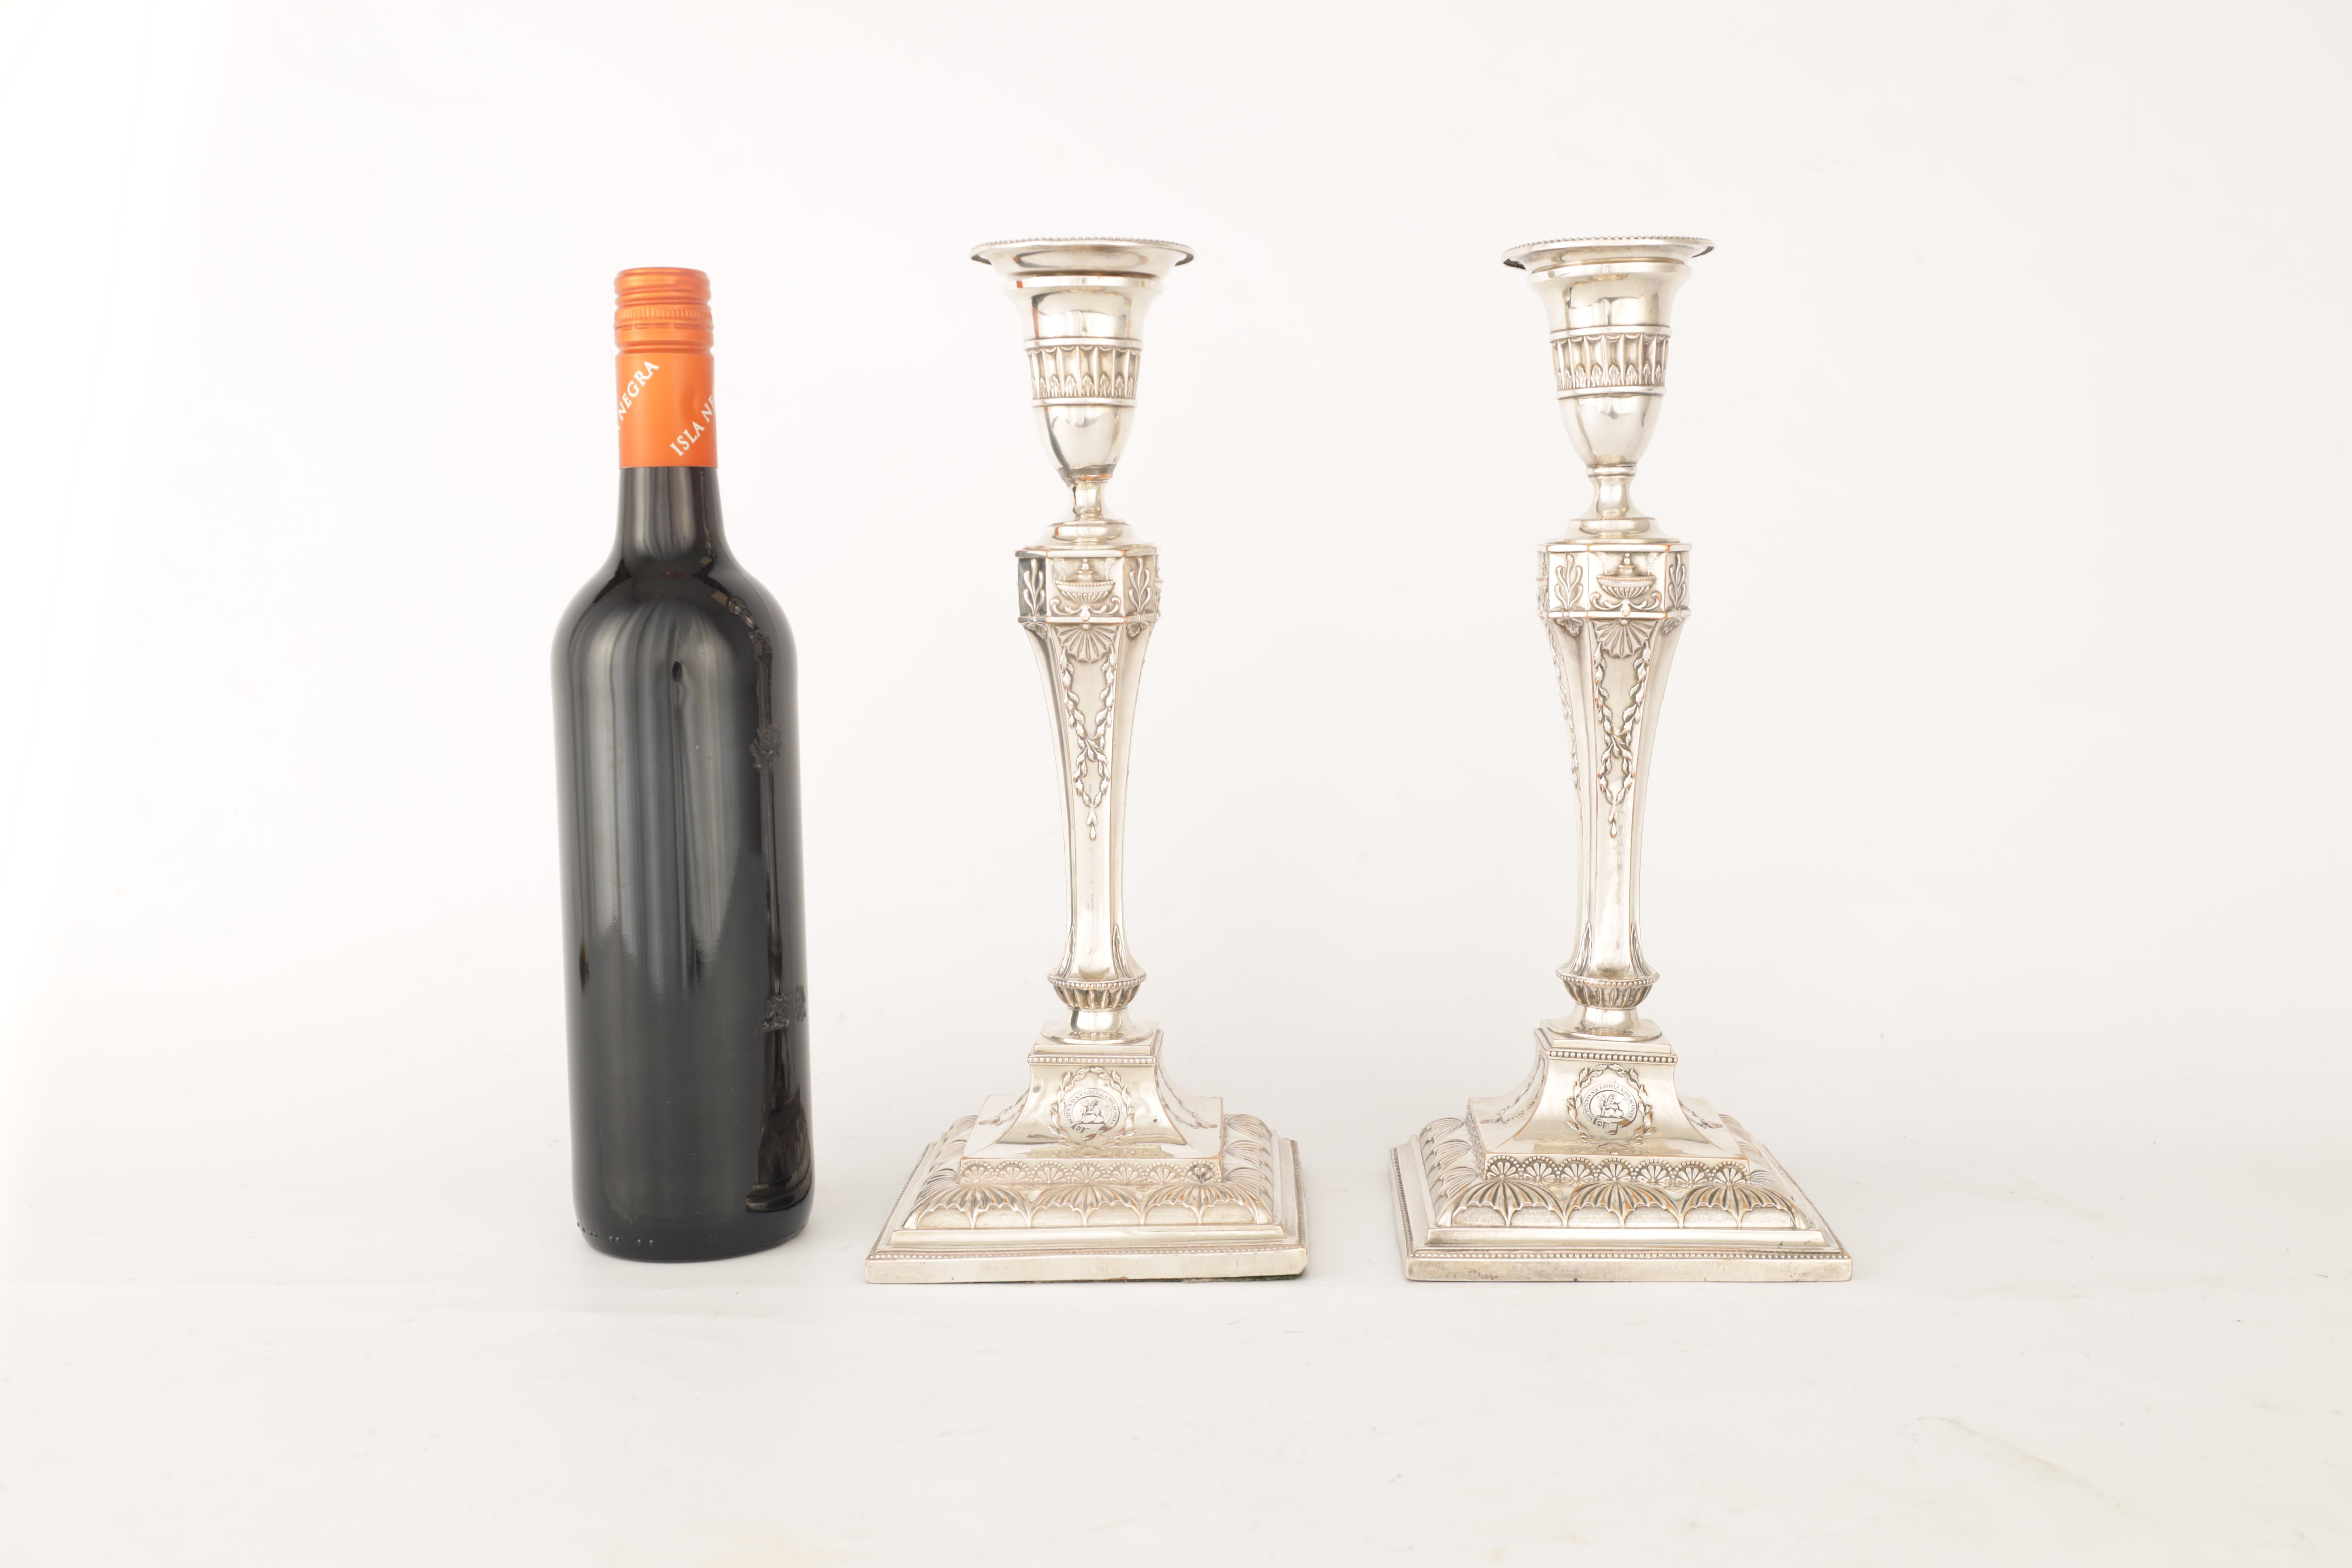 A PAIR OF 19TH CENTURY SHEFFIELD PLATE SILVER ON COPPER ADAM STYLE CANDLESTICKS bearing the crest - Image 5 of 5